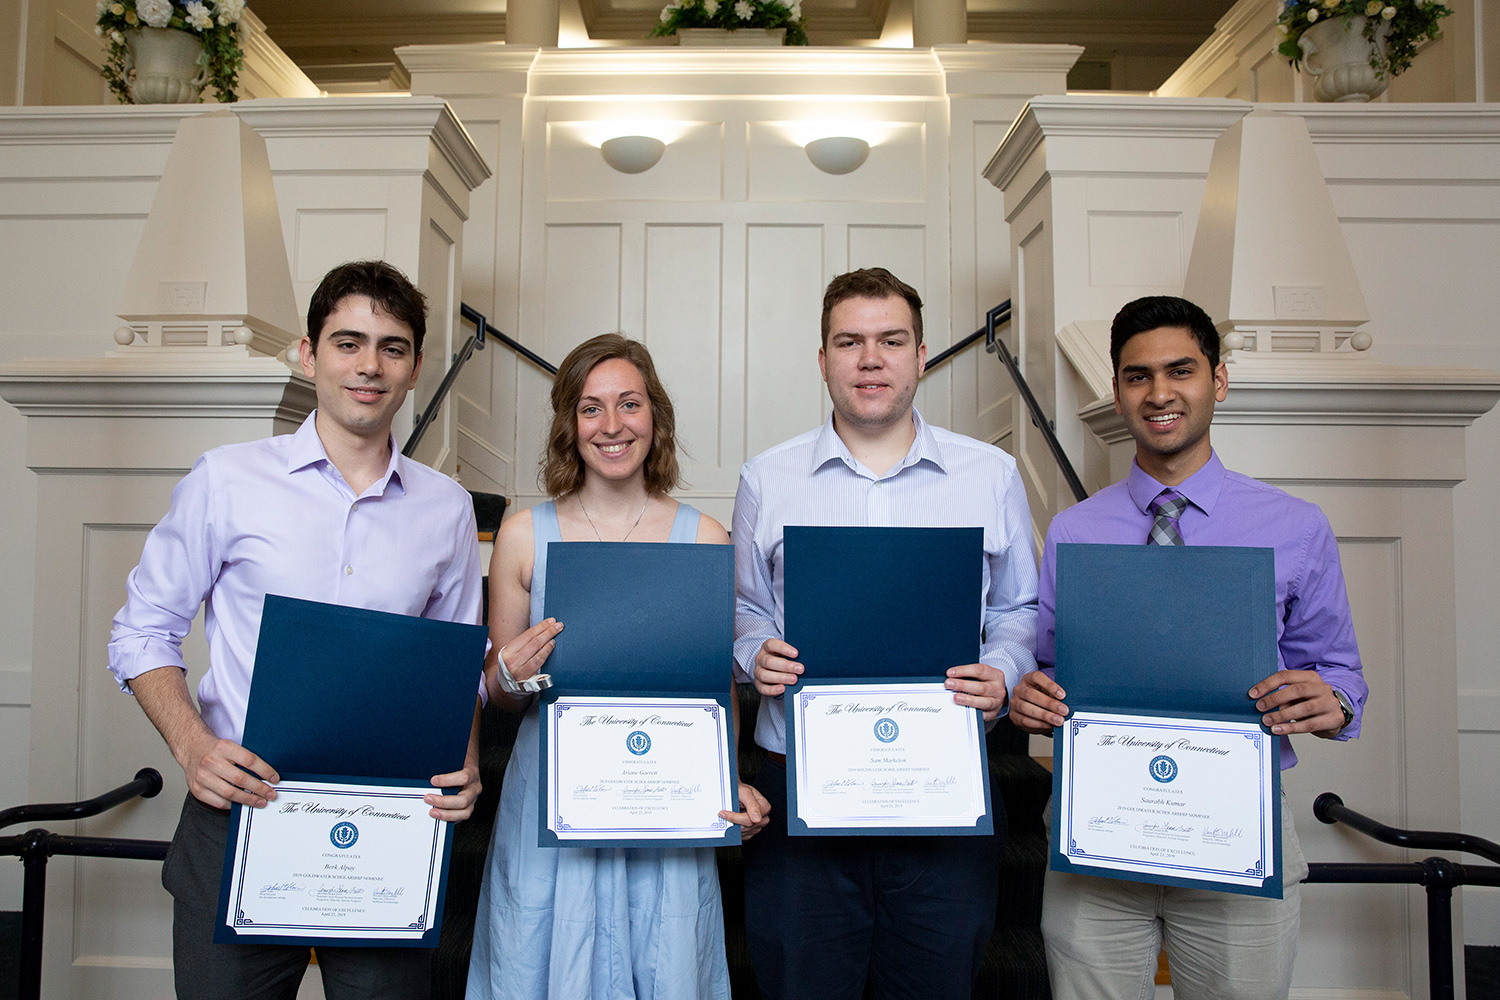 UConn's 2019 Goldwater Scholars during the Office of National Scholarships and Fellowships' 2019 Celebration of Excellence at the Alumni Center on April 23. This year for the first time, all four of the UConn students nominated as Goldwater Scholars were successful. (Bri Diaz/UConn Photo)